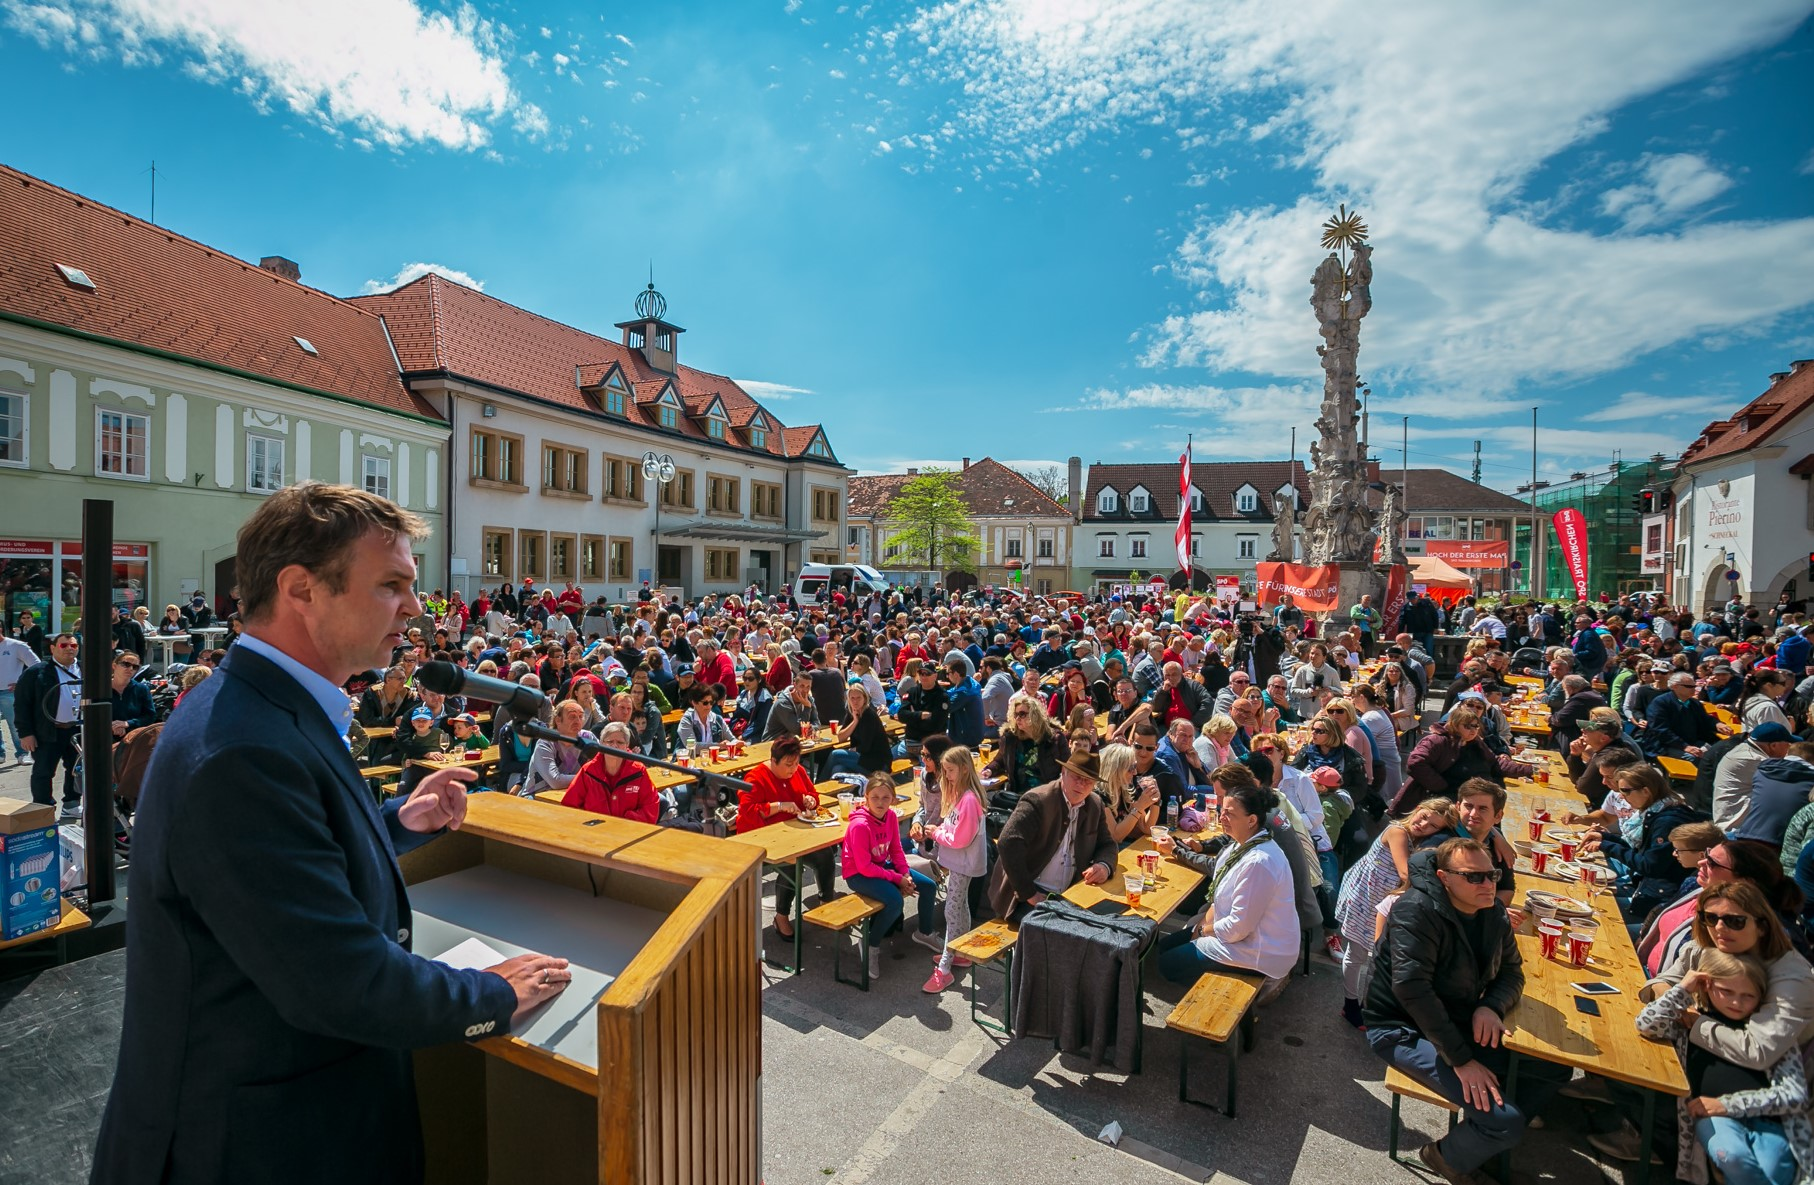 About 20,000 people live in Traiskirchen in Lower Austria, Mayor is Andreas Babler, there is also a refugee camp